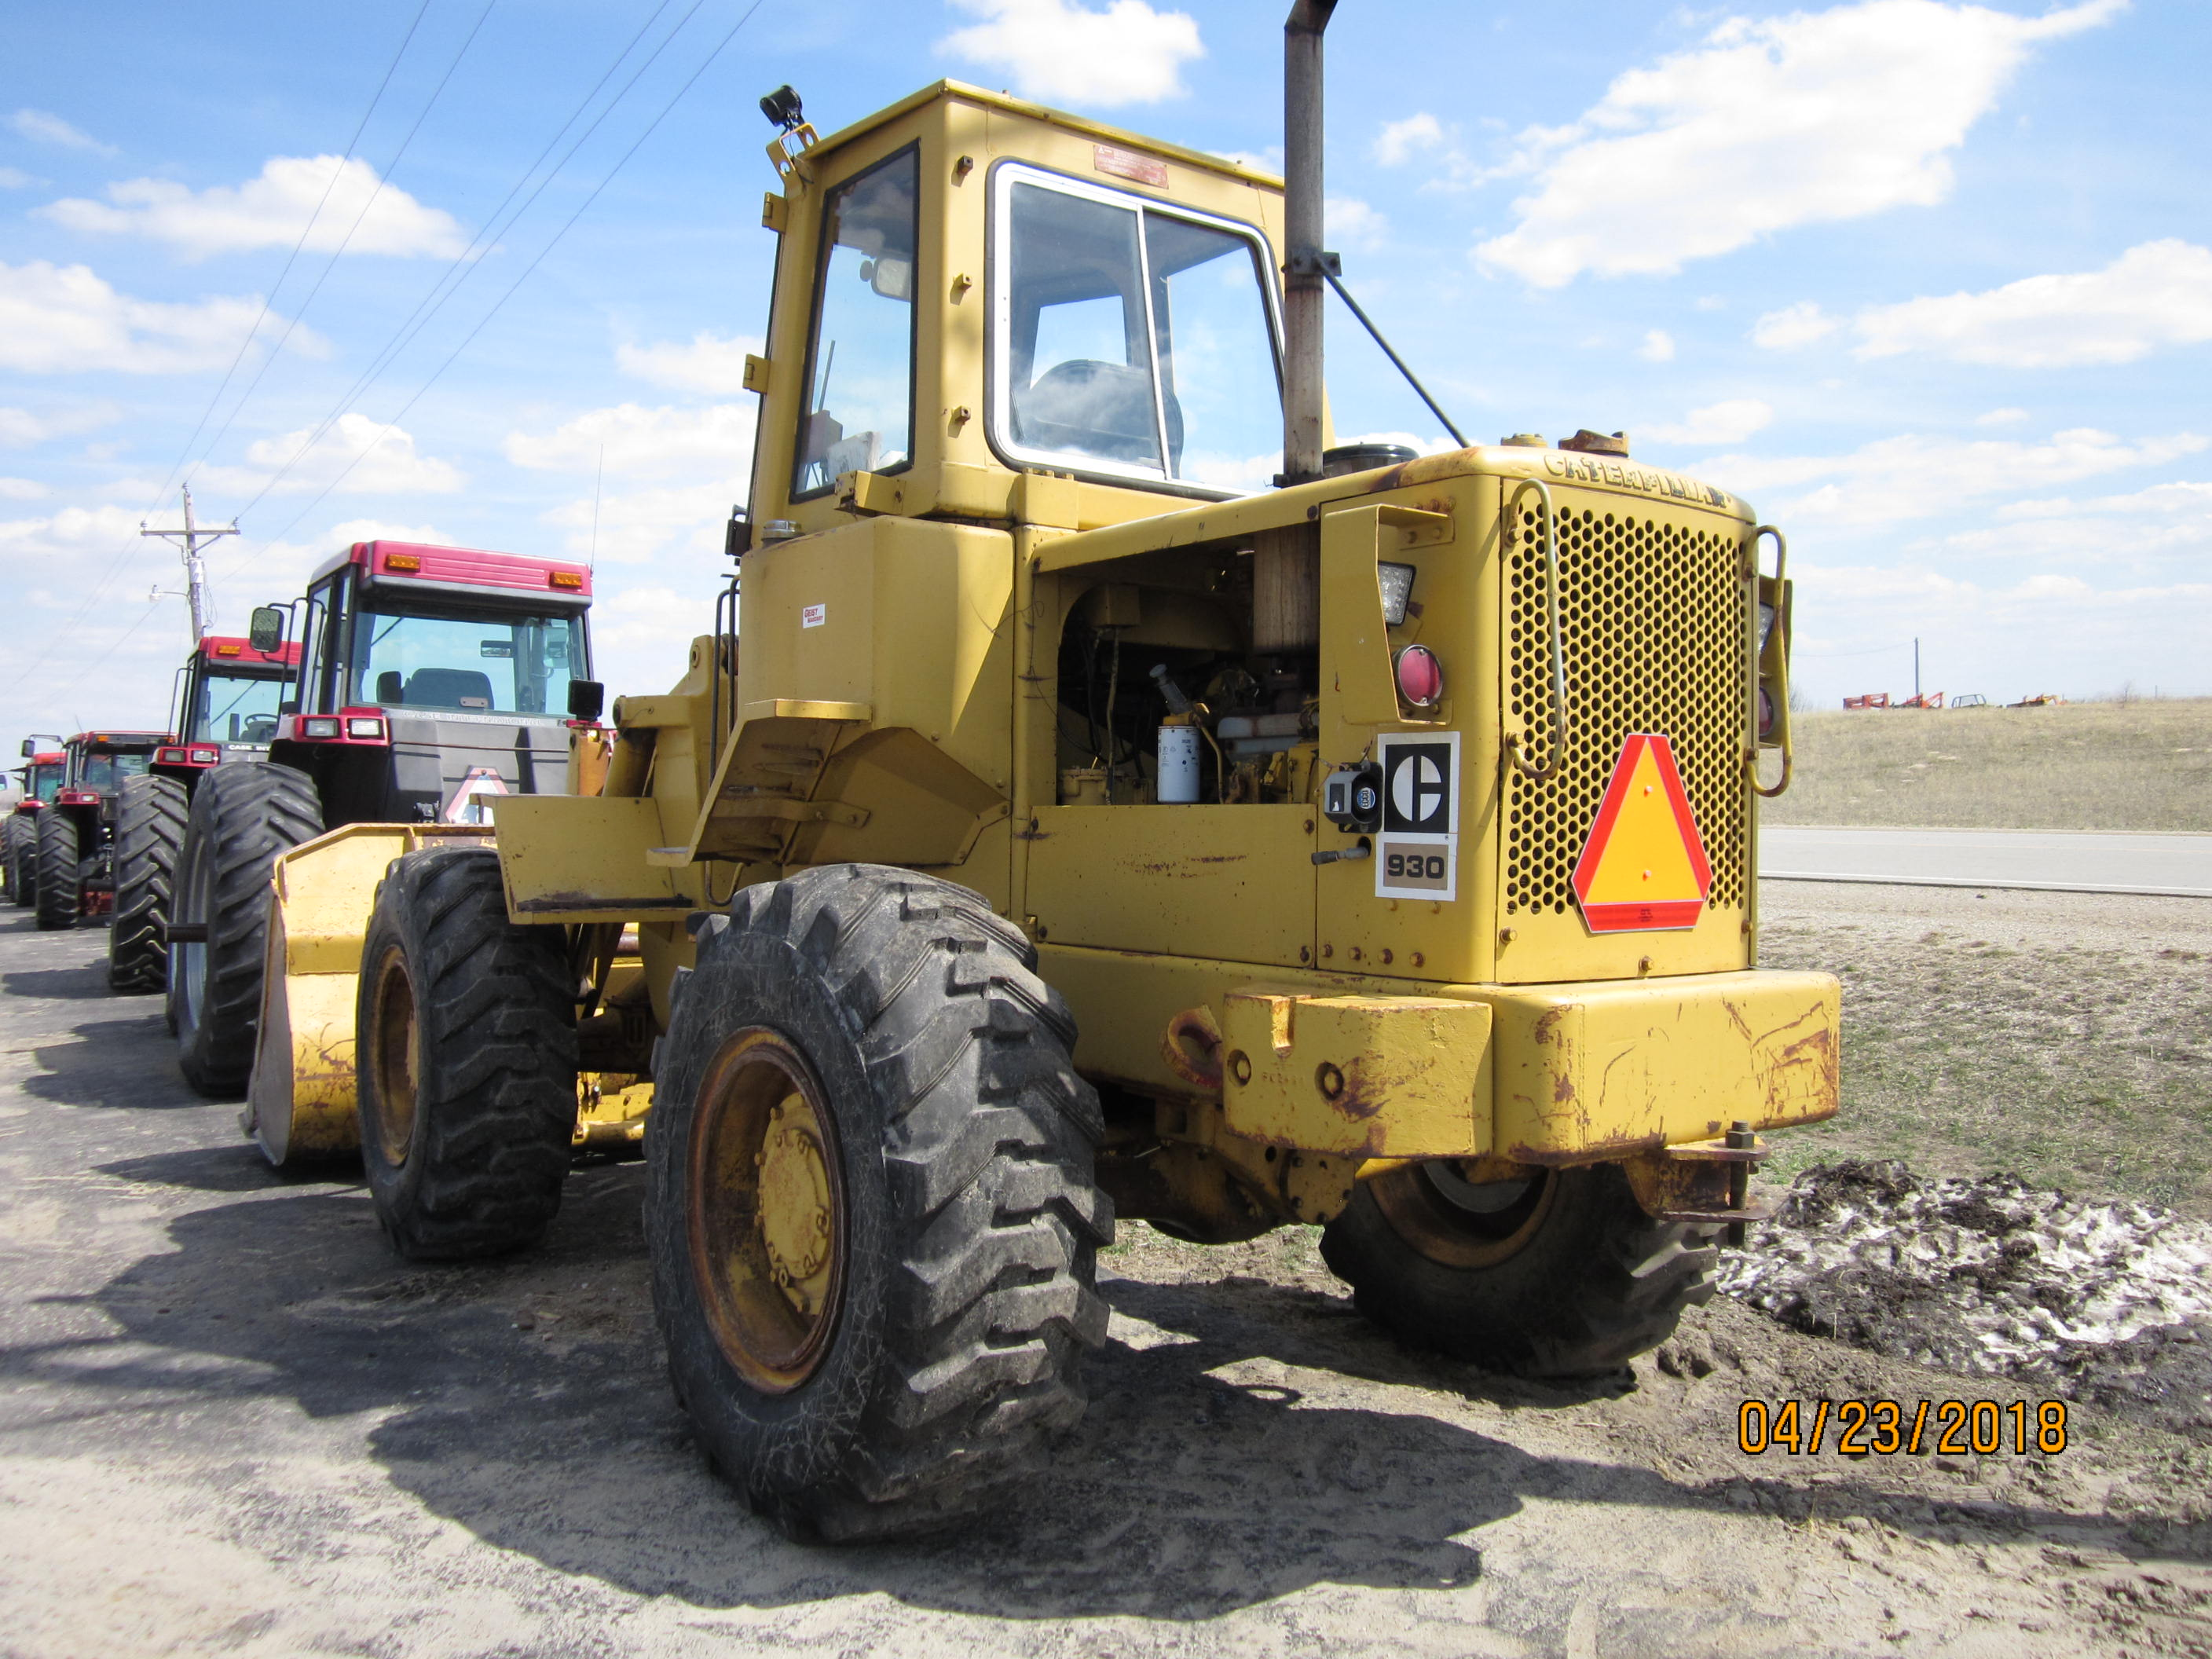 Caterpillar 930 Wheel Loader for sale | IronSearch